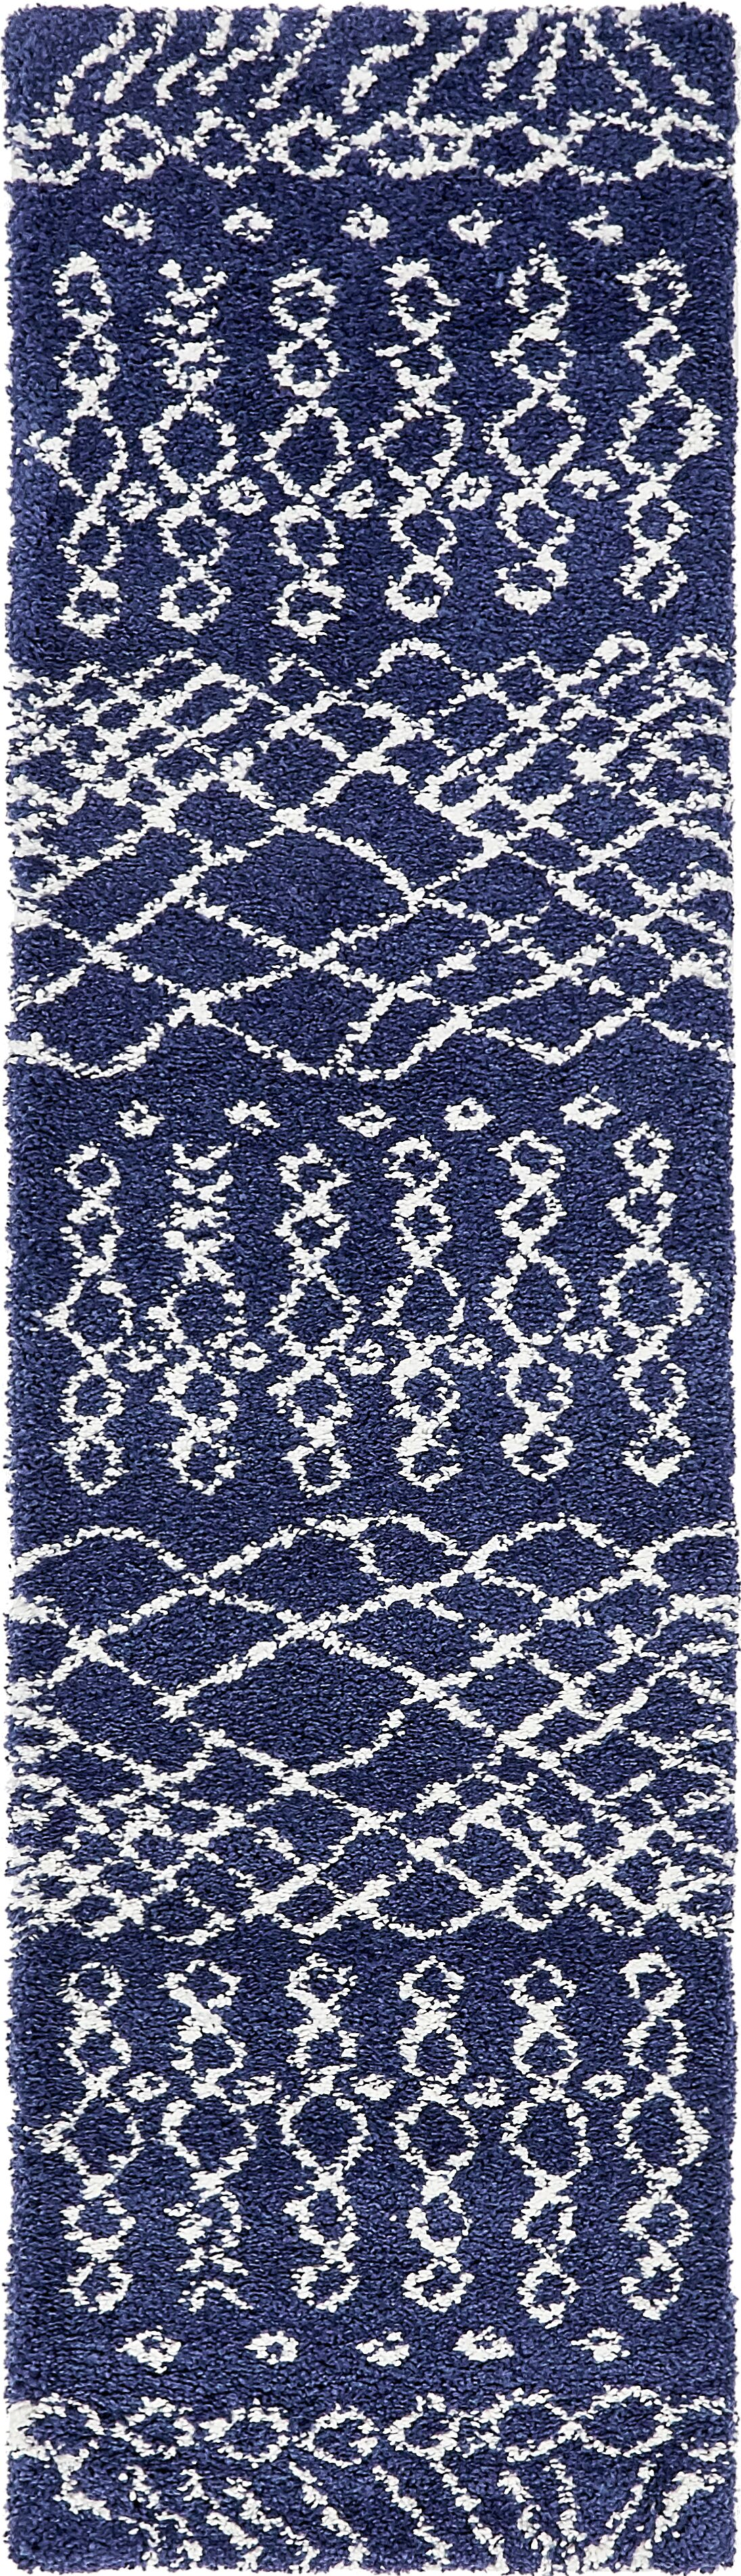 Bourne Machine woven Navy Blue Area Rug Rug Size: Runner 2'7